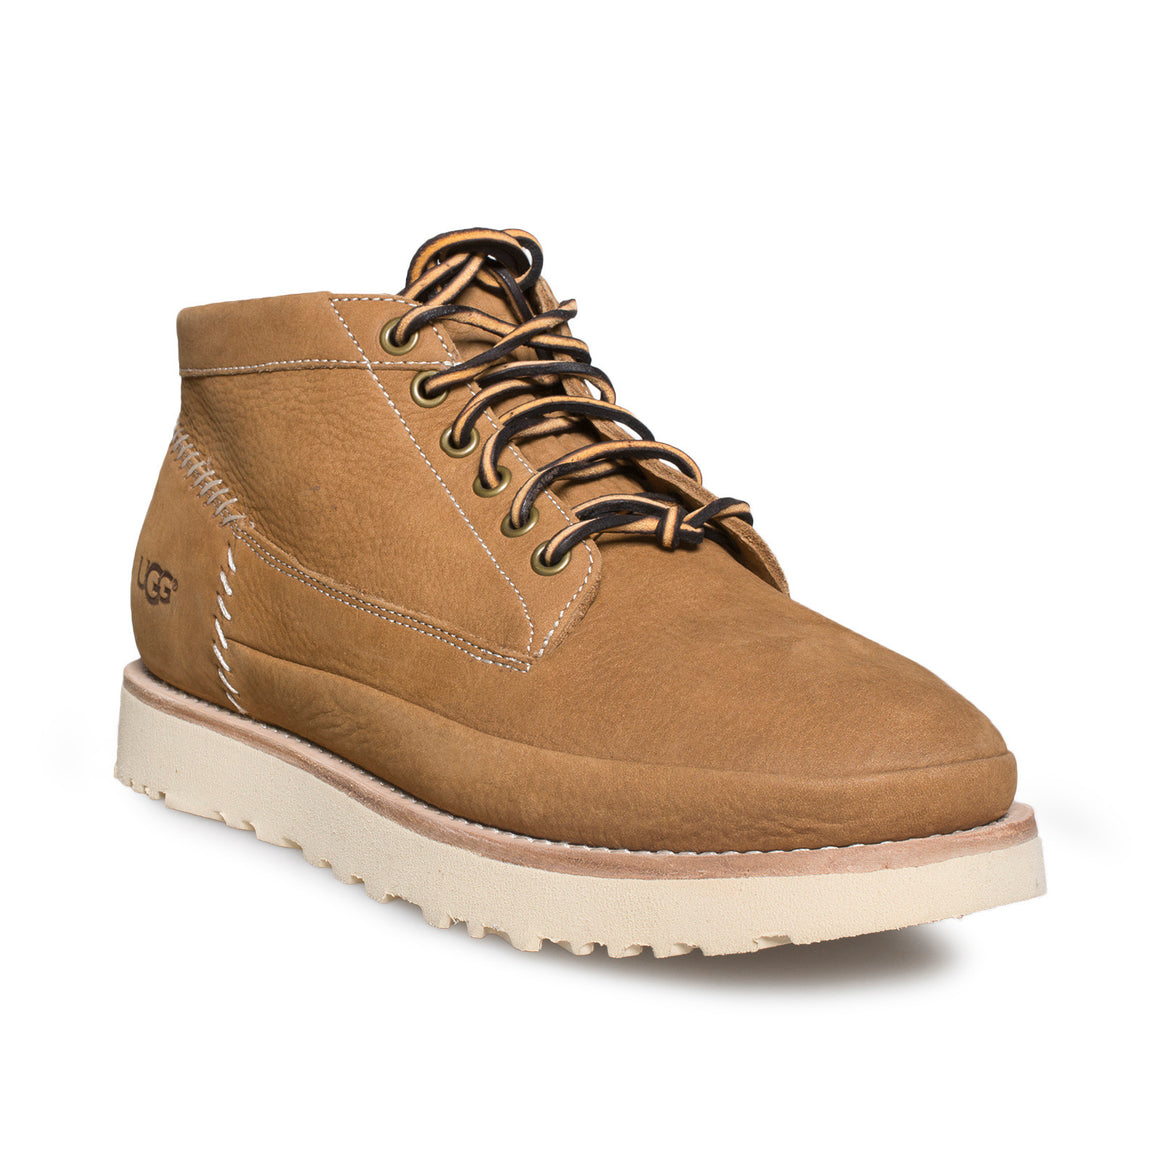 UGG Campfire Trail Chestnut Boots - Men's